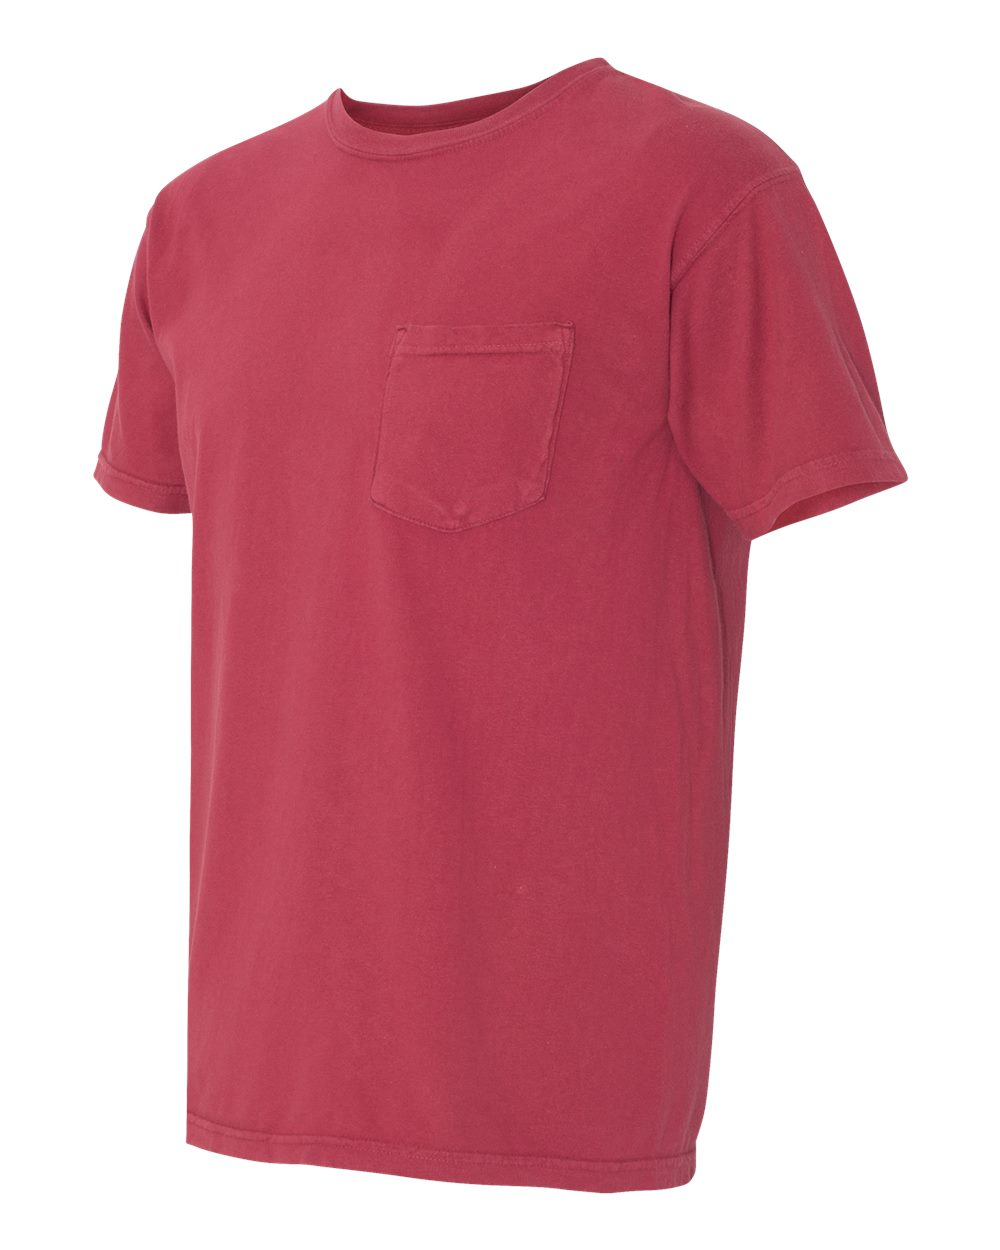 Comfort-Colors-Men-039-s-6-1-oz-Garment-Dyed-Pocket-T-Shirt-6030CC-S-3XL thumbnail 27